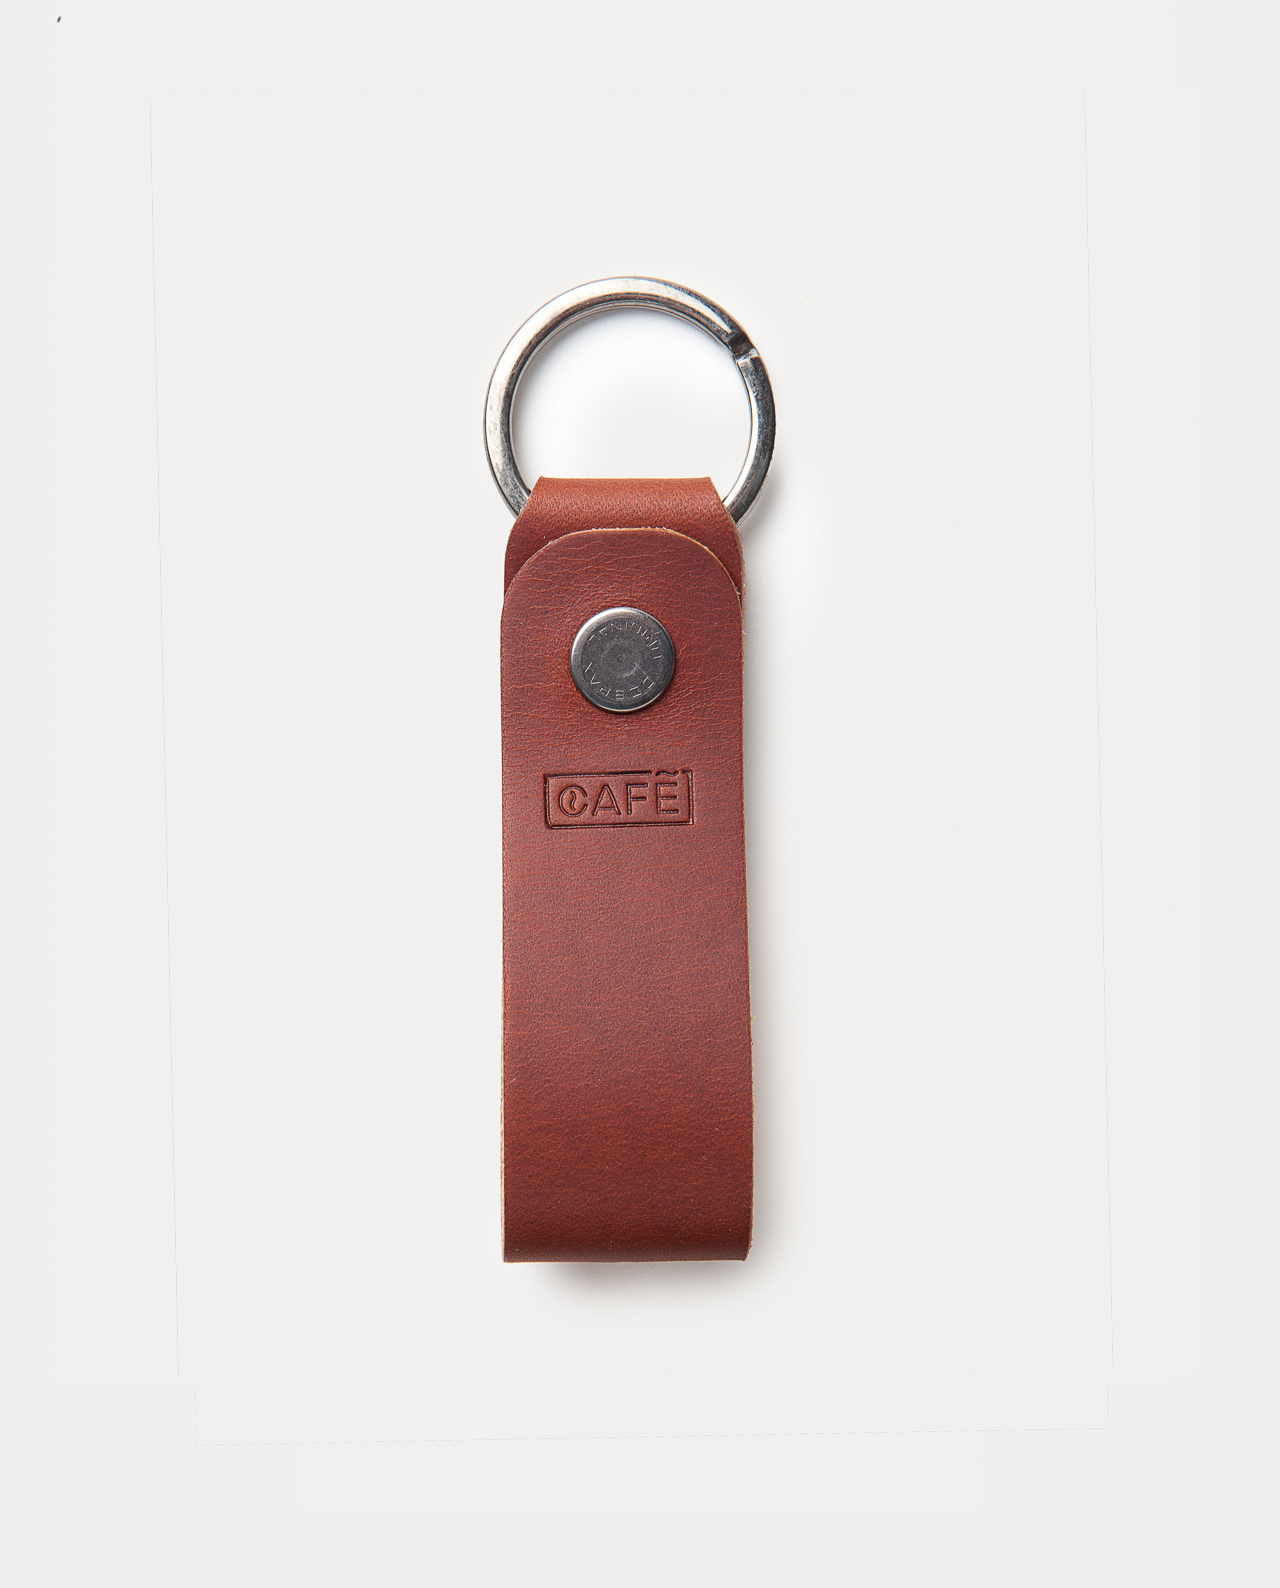 leather keychain brown handcrafted in Spain